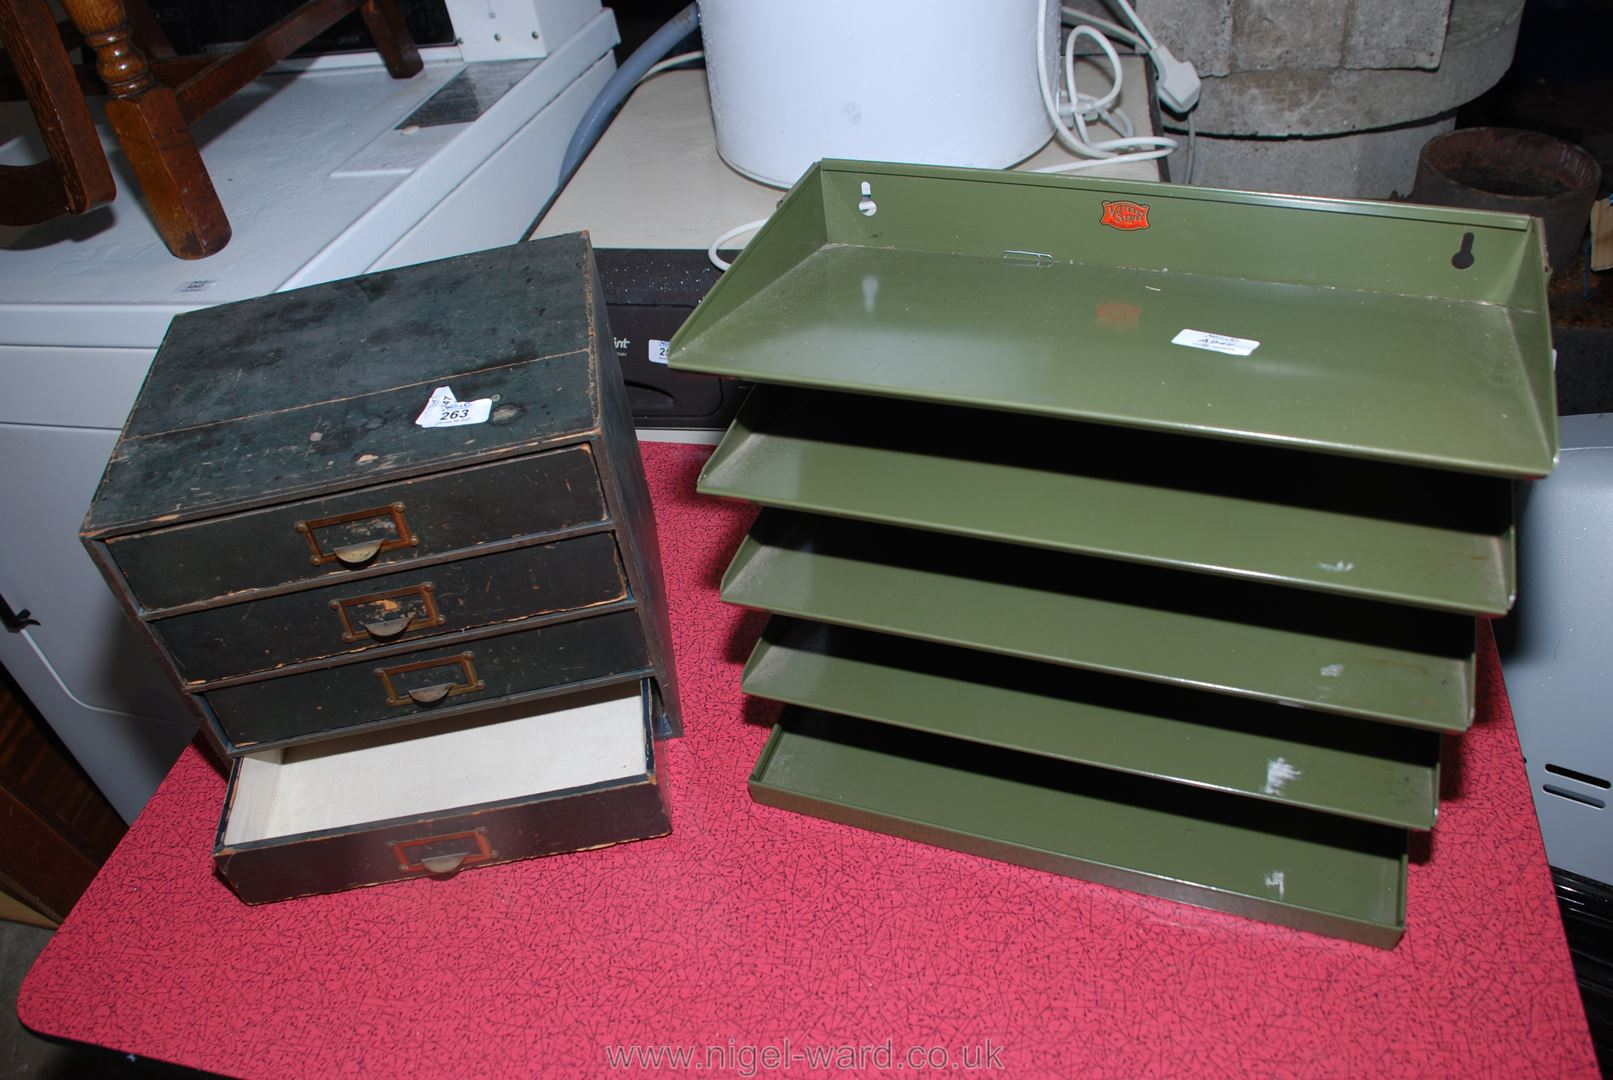 Metal wall hanging Veteran Series filing shelf and a wooden four-drawer stationery box.